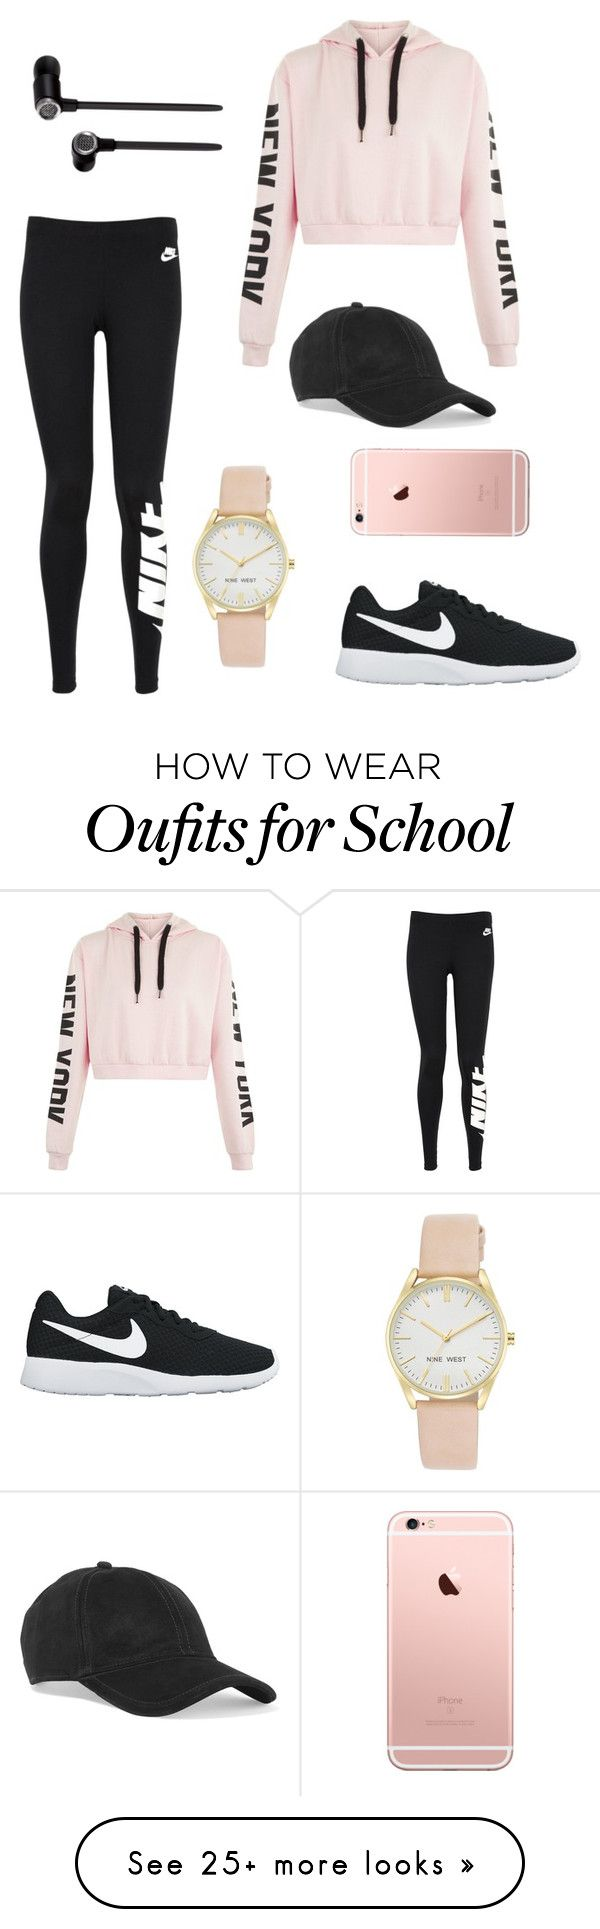 """School Outfits"" by maia-hd on Polyvore featuring NIKE, Master & Dynamic, Nine West and rag & bone"